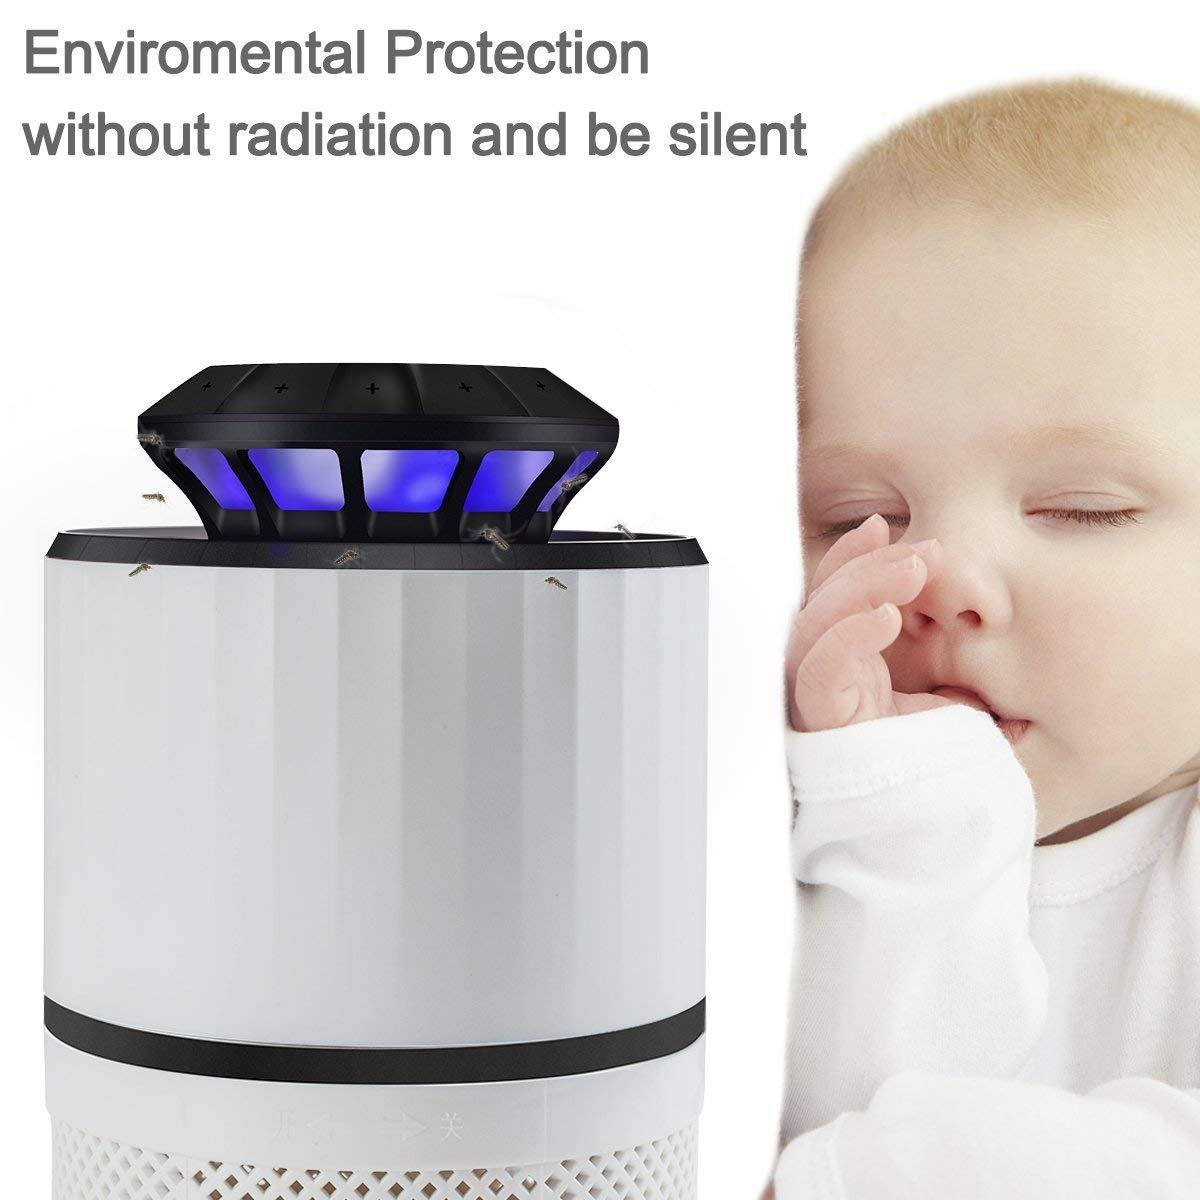 Mery Electric Insect Trap Indoor Bug Fly Mosquito Trap Killer – UV Light, Fan Suction Traps Even the Tiniest Flying Insects – No Zapper – Child-Safe, Non-Toxic Odor-Free (White) by Mery (Image #6)